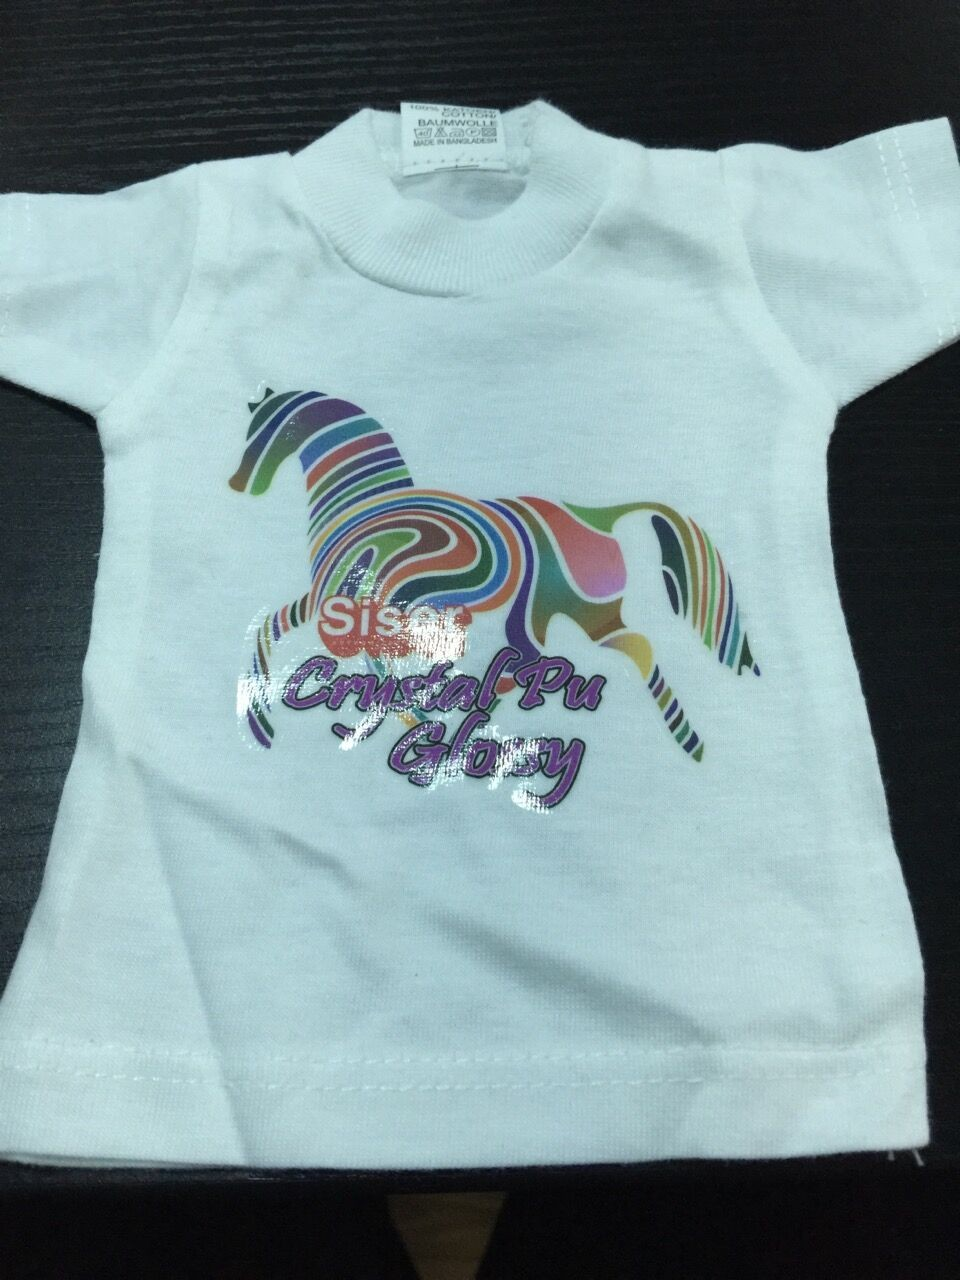 water based latex screen printing ink for kid's clothes